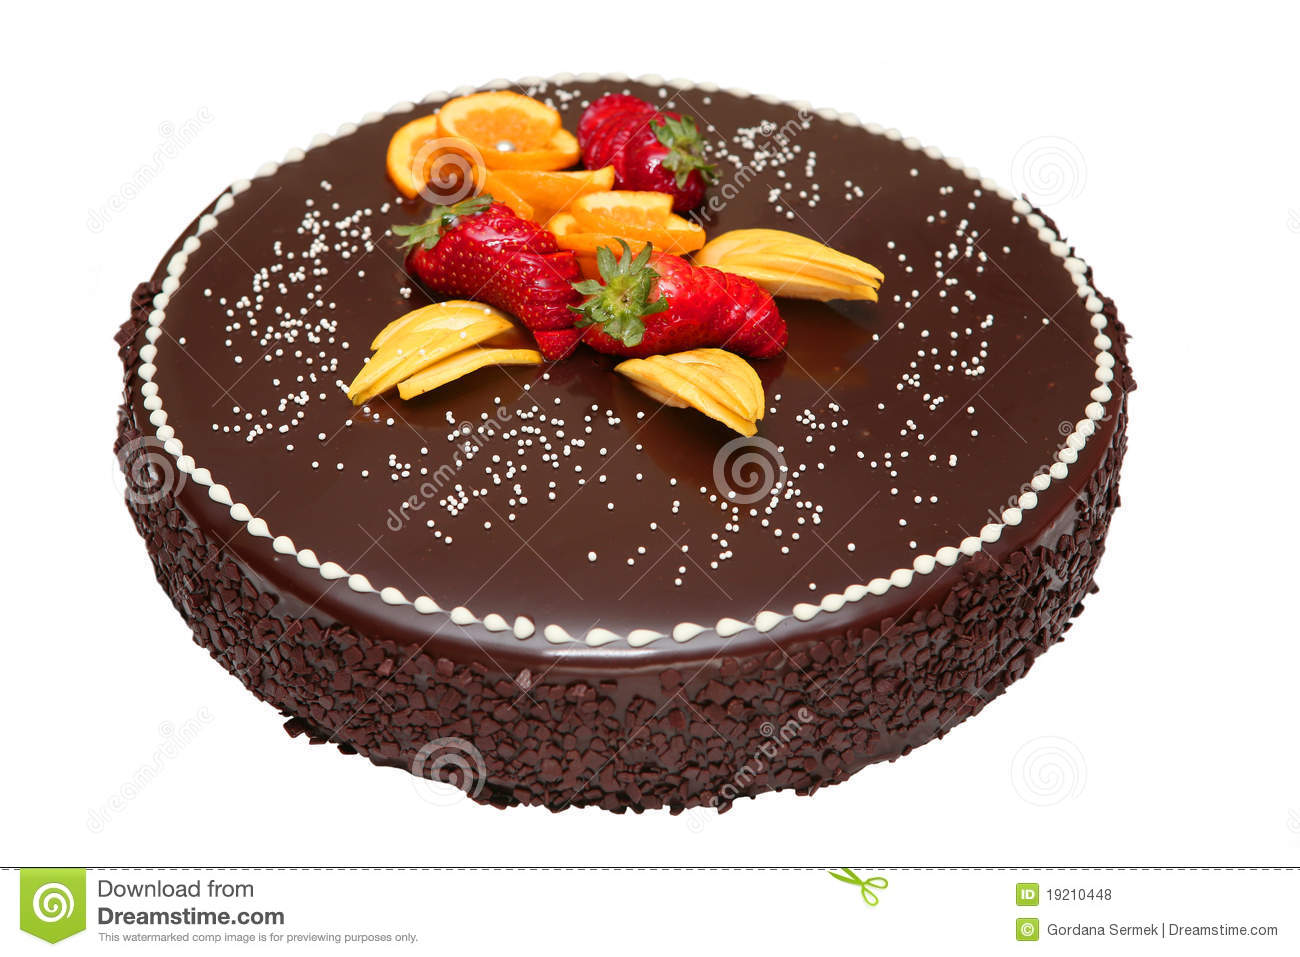 Fruit Chocolate Cake Images : Chocolate Cake Decorated With Fruit Royalty Free Stock ...